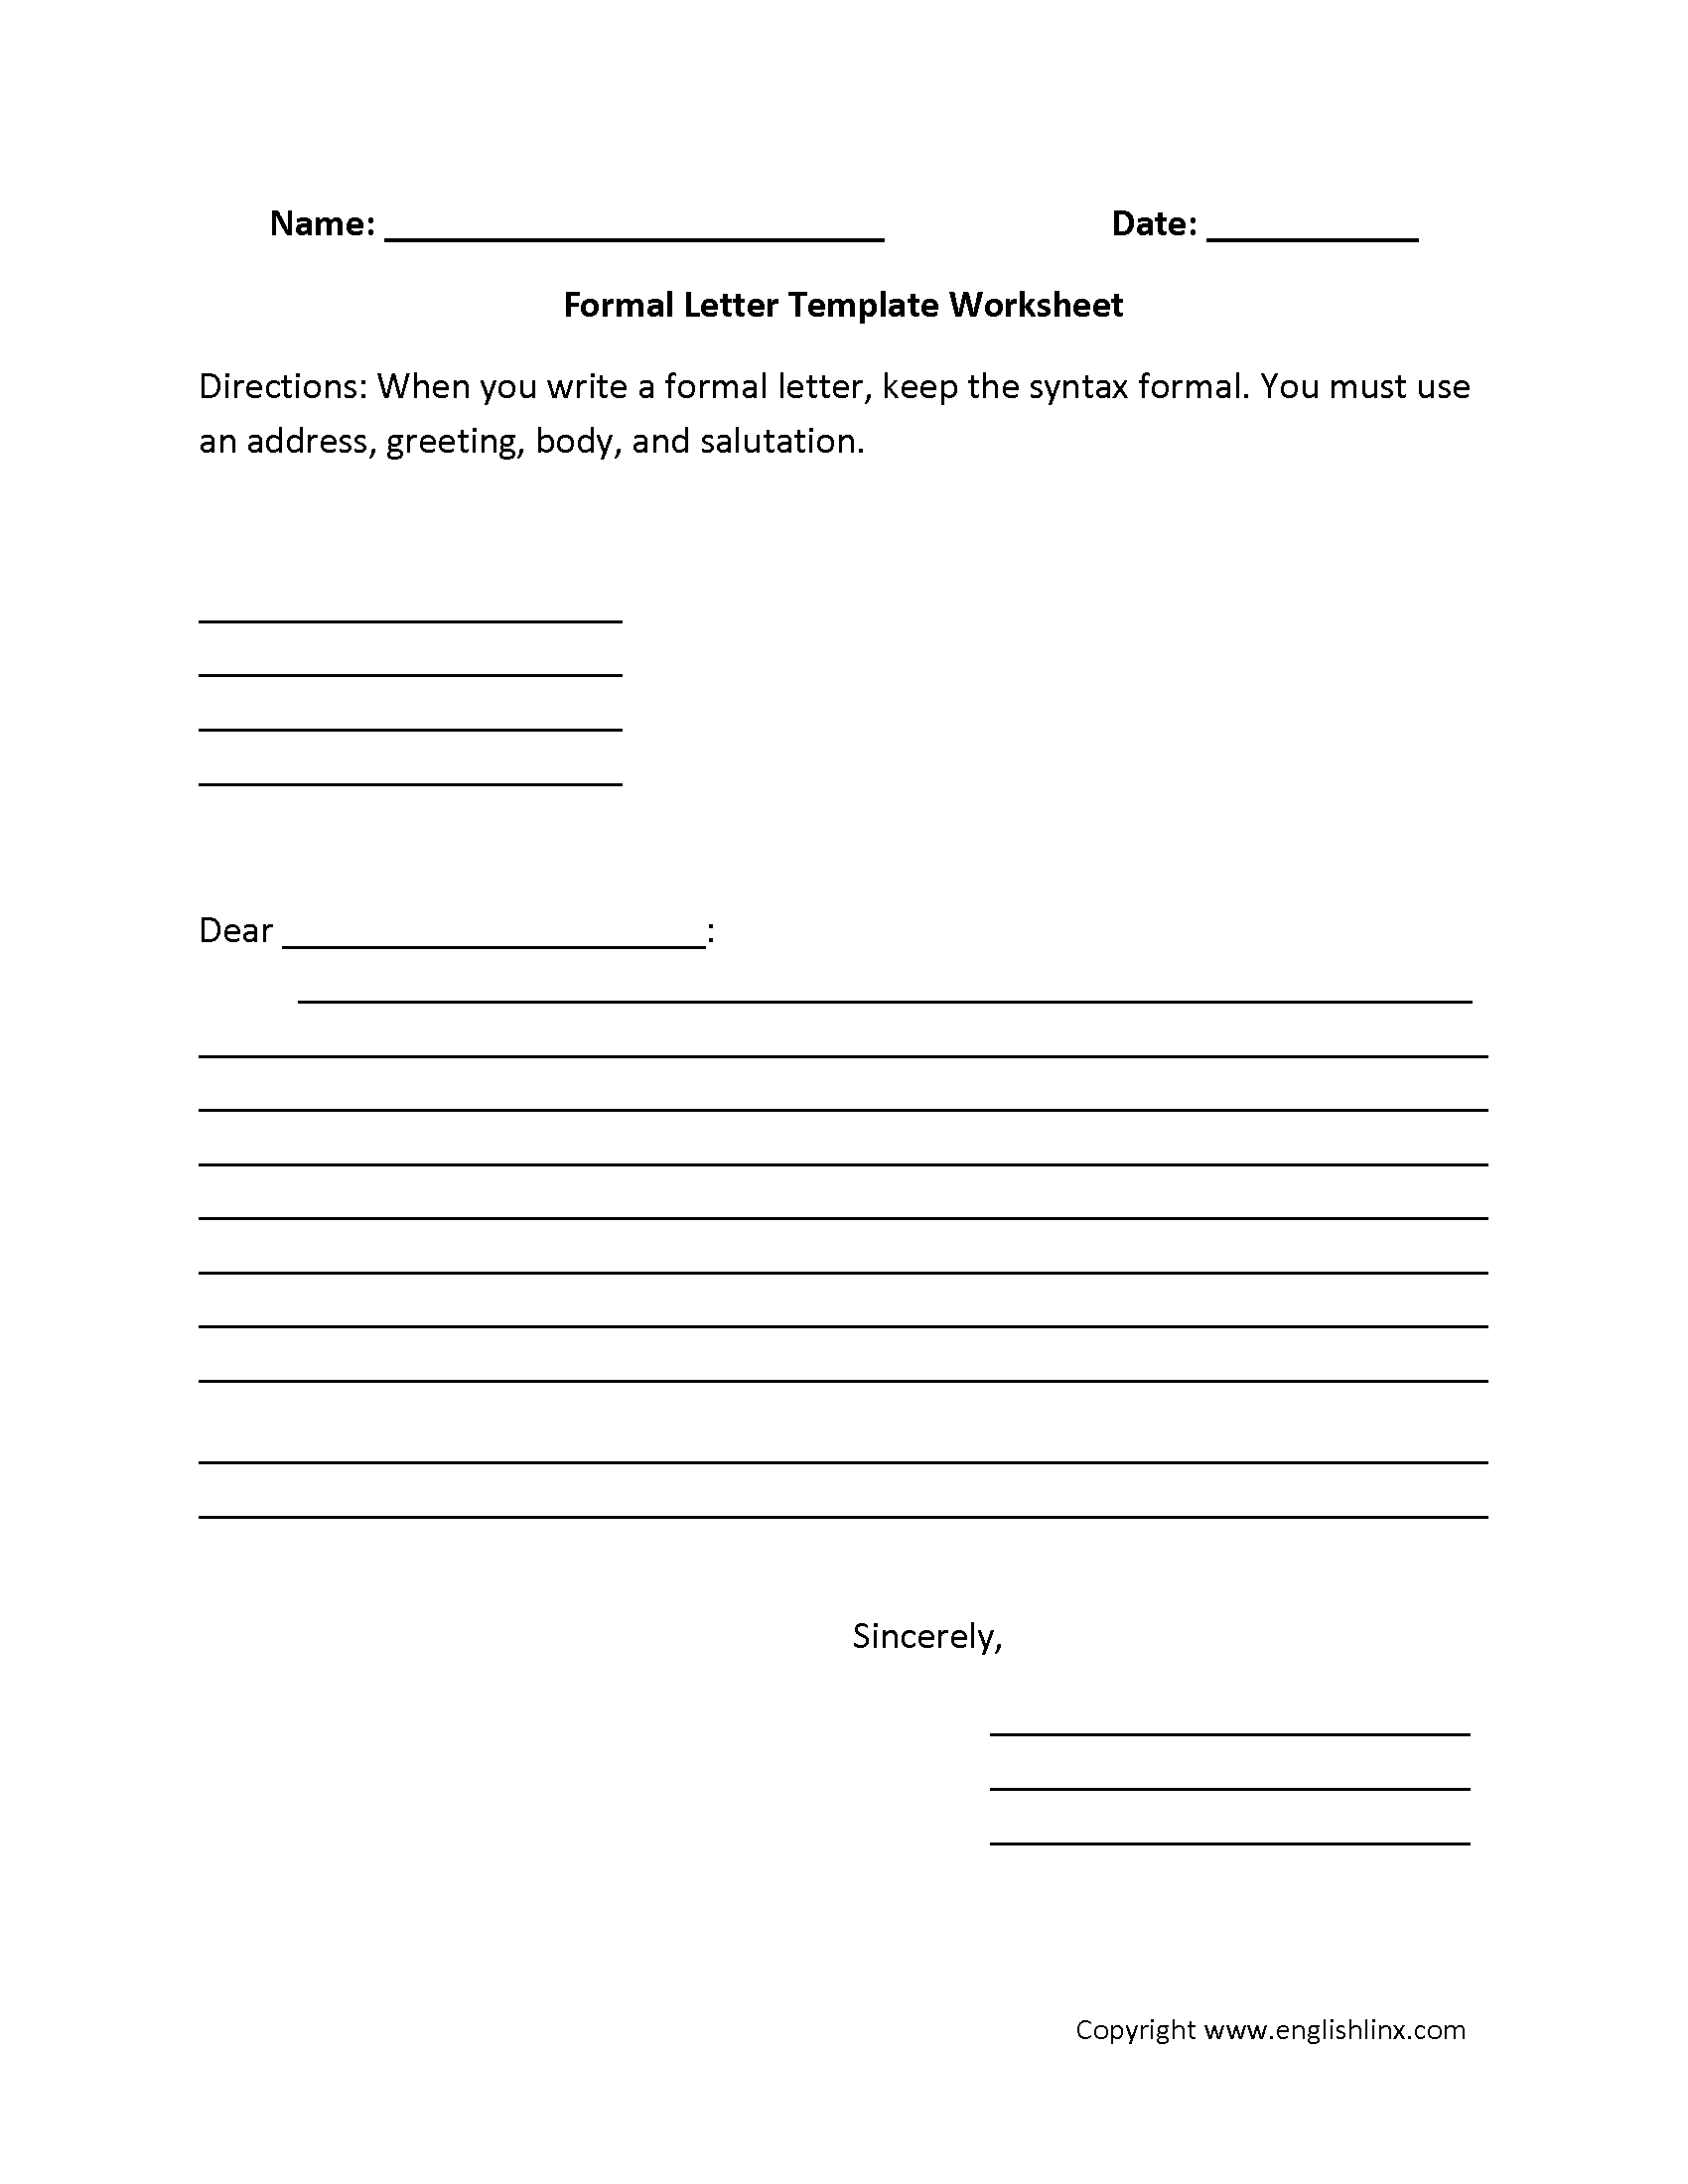 formal letter writing worksheets